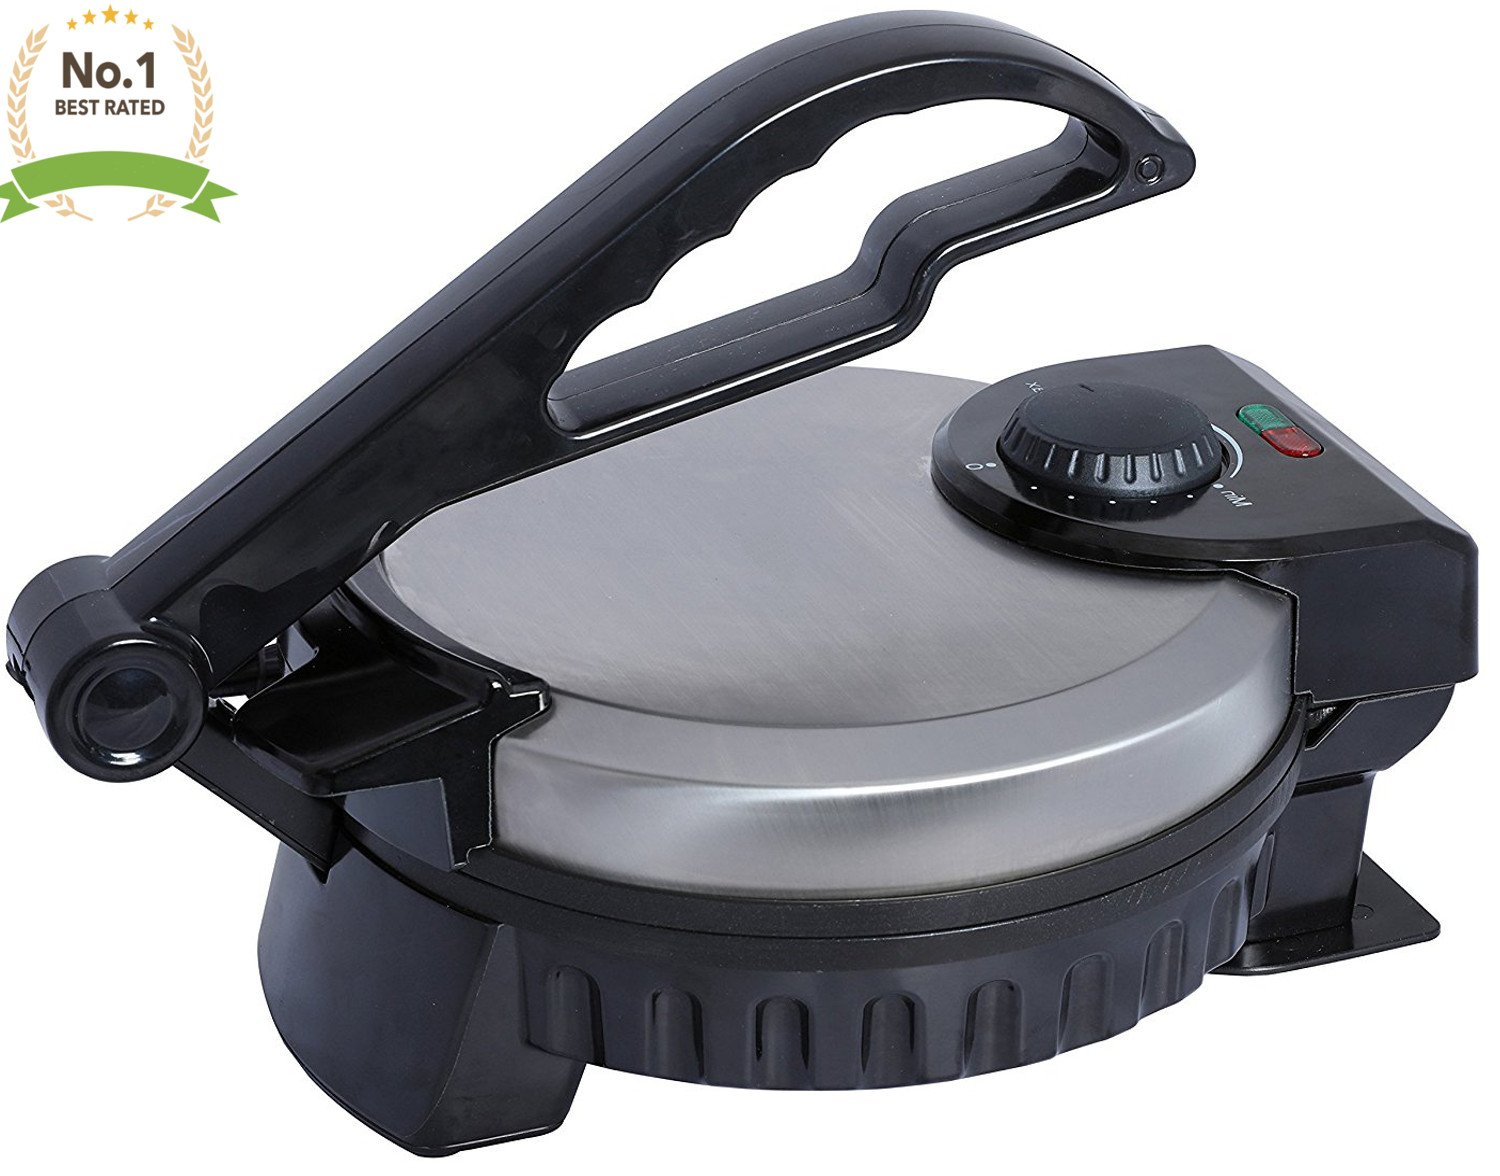 Professional Non Stick Electric Tortilla Maker Temperature Control Stainless Steel Finish With Cool Touch handle for flower tortillas corn tortillas, sugar pancakes (gorditas) 8'' Cooking Surface